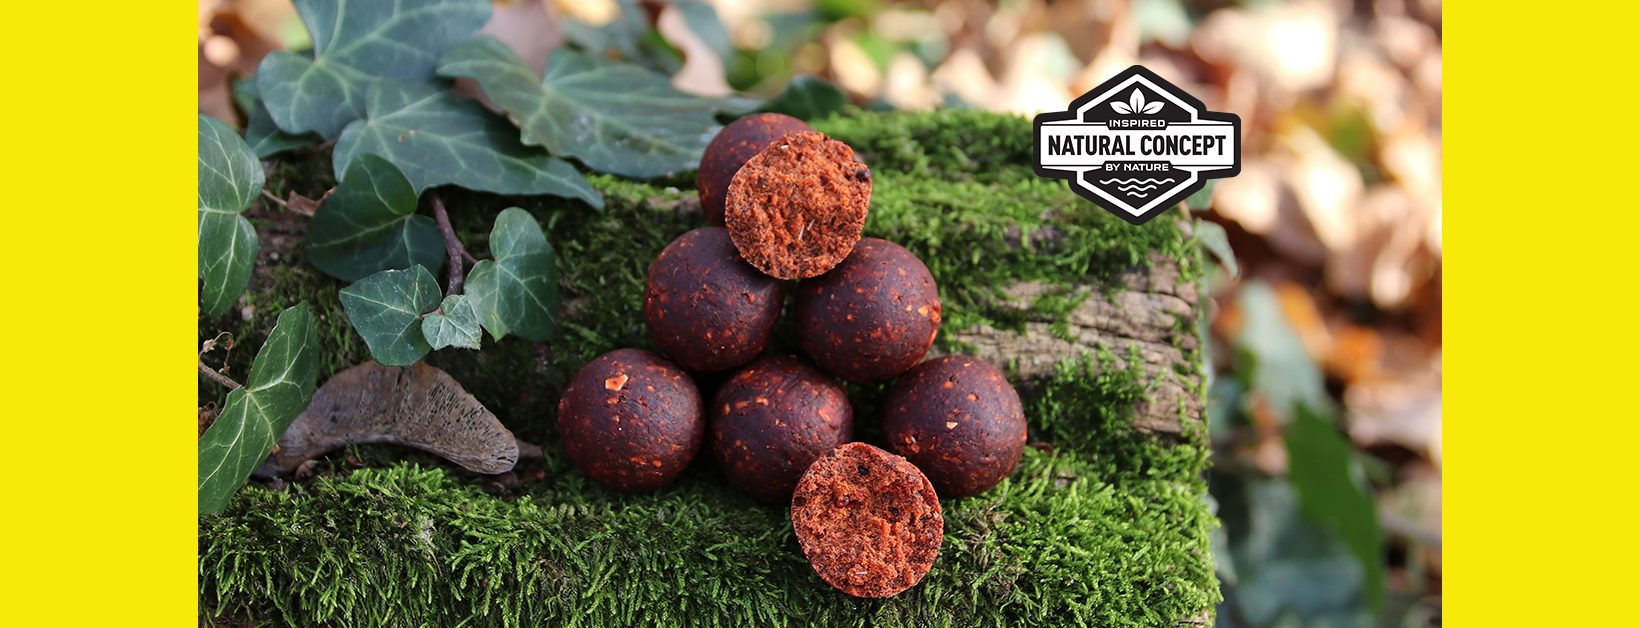 banner boilies natural